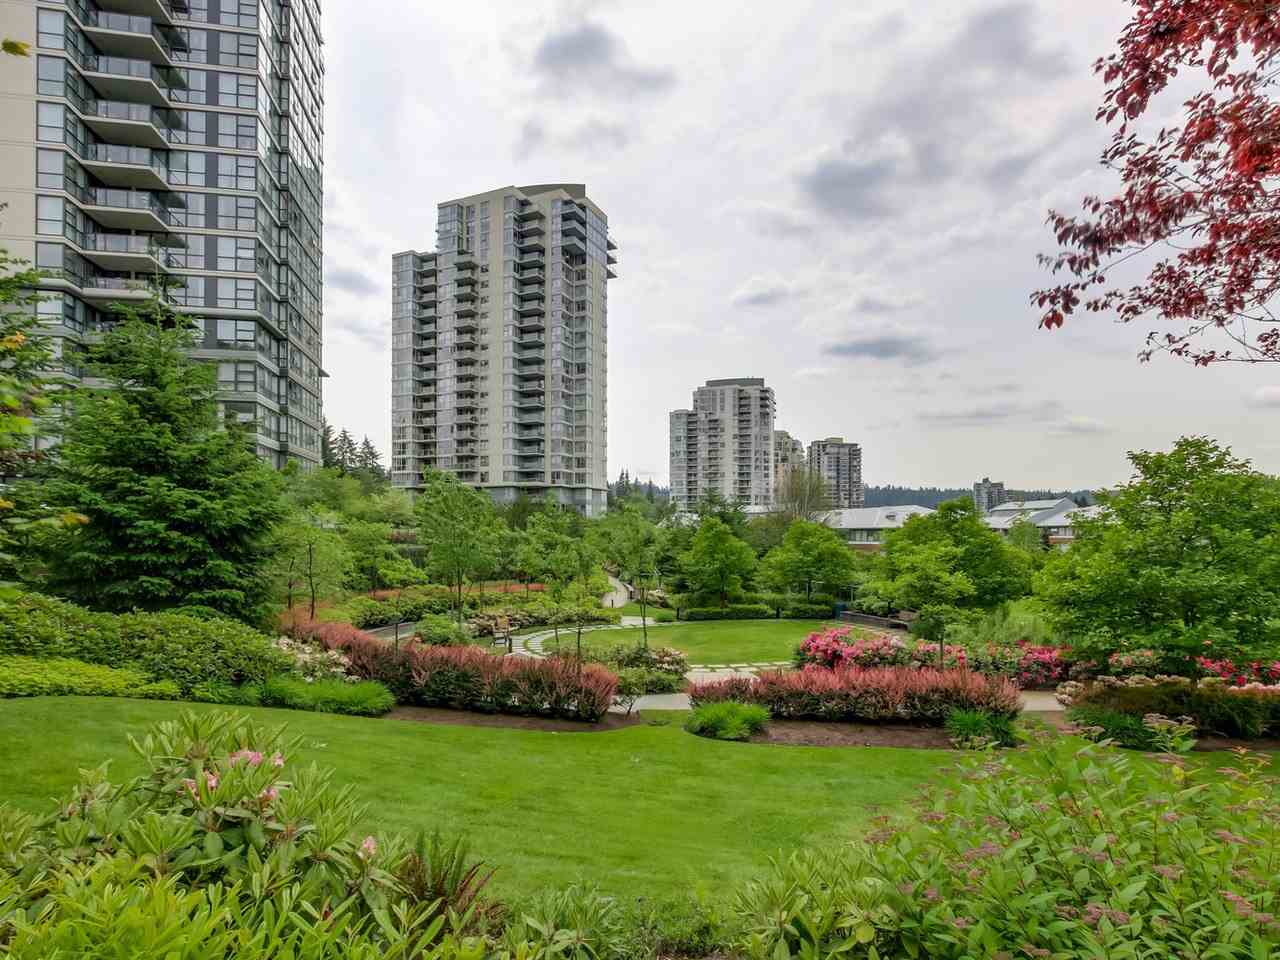 Photo 19: 203 288 UNGLESS WAY in Port Moody: Port Moody Centre Condo for sale : MLS(r) # R2071333